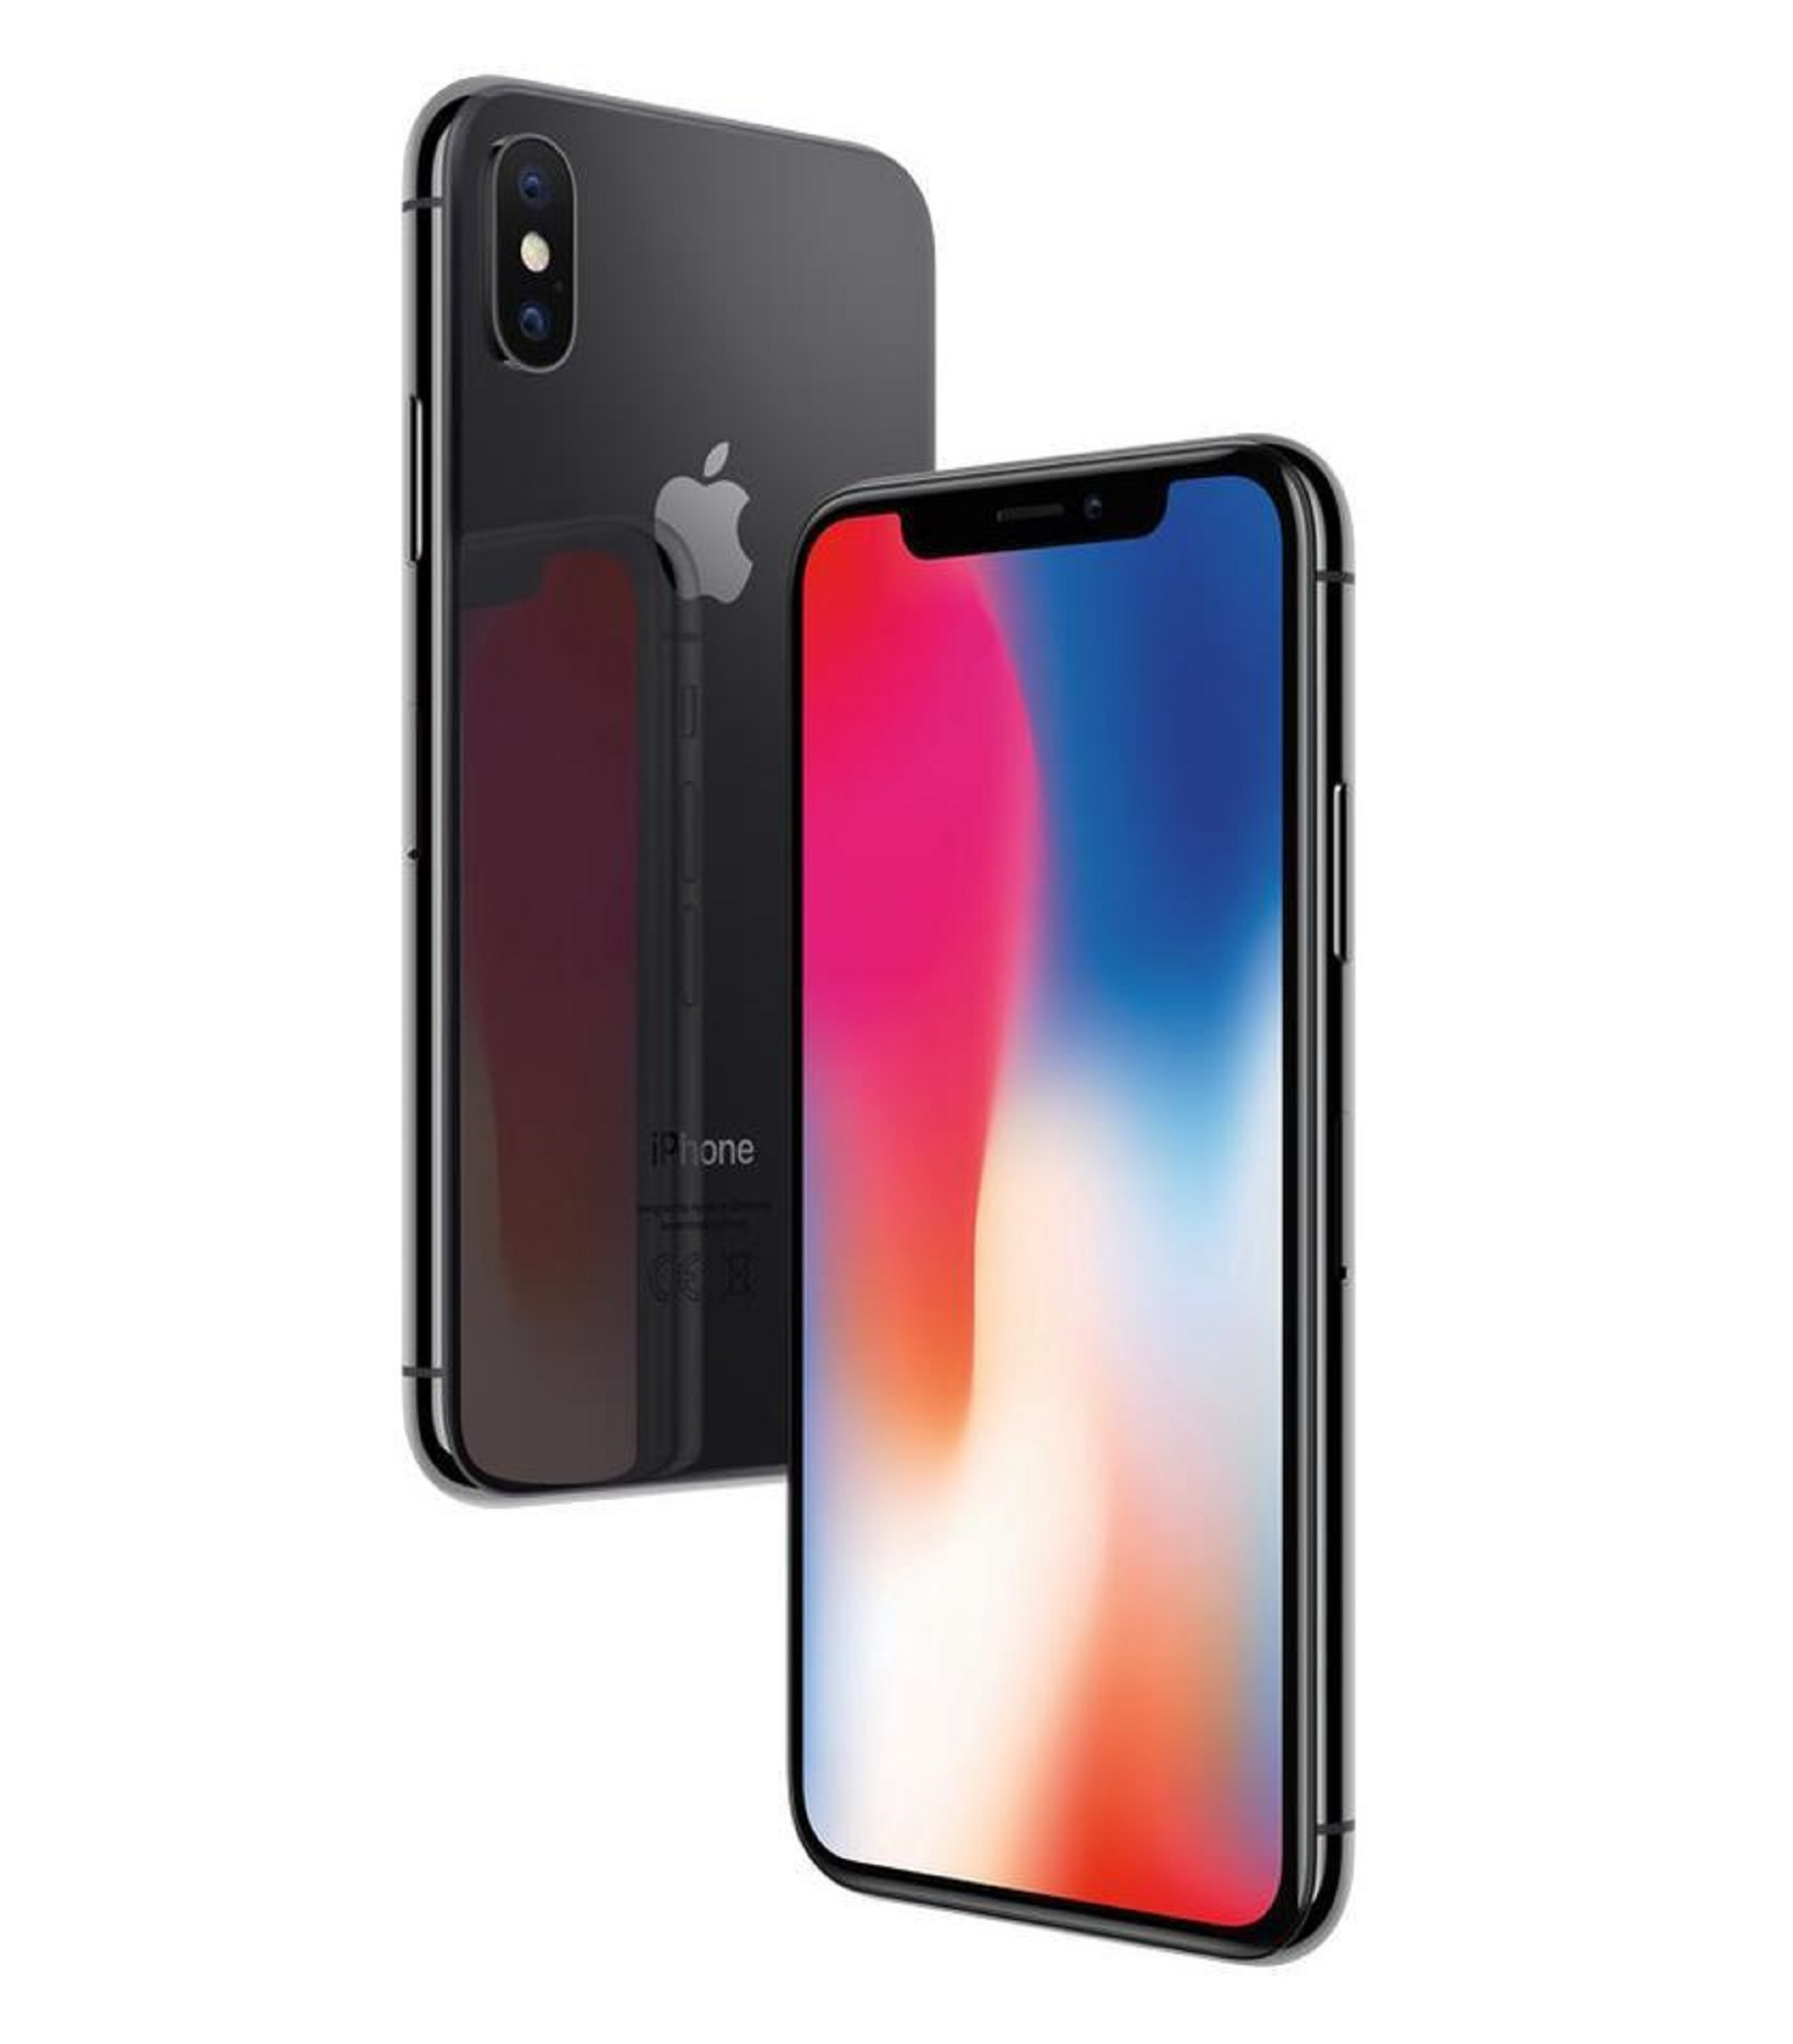 thumbnail 11 - Apple iPhone X 64GB Factory Unlocked Smartphone